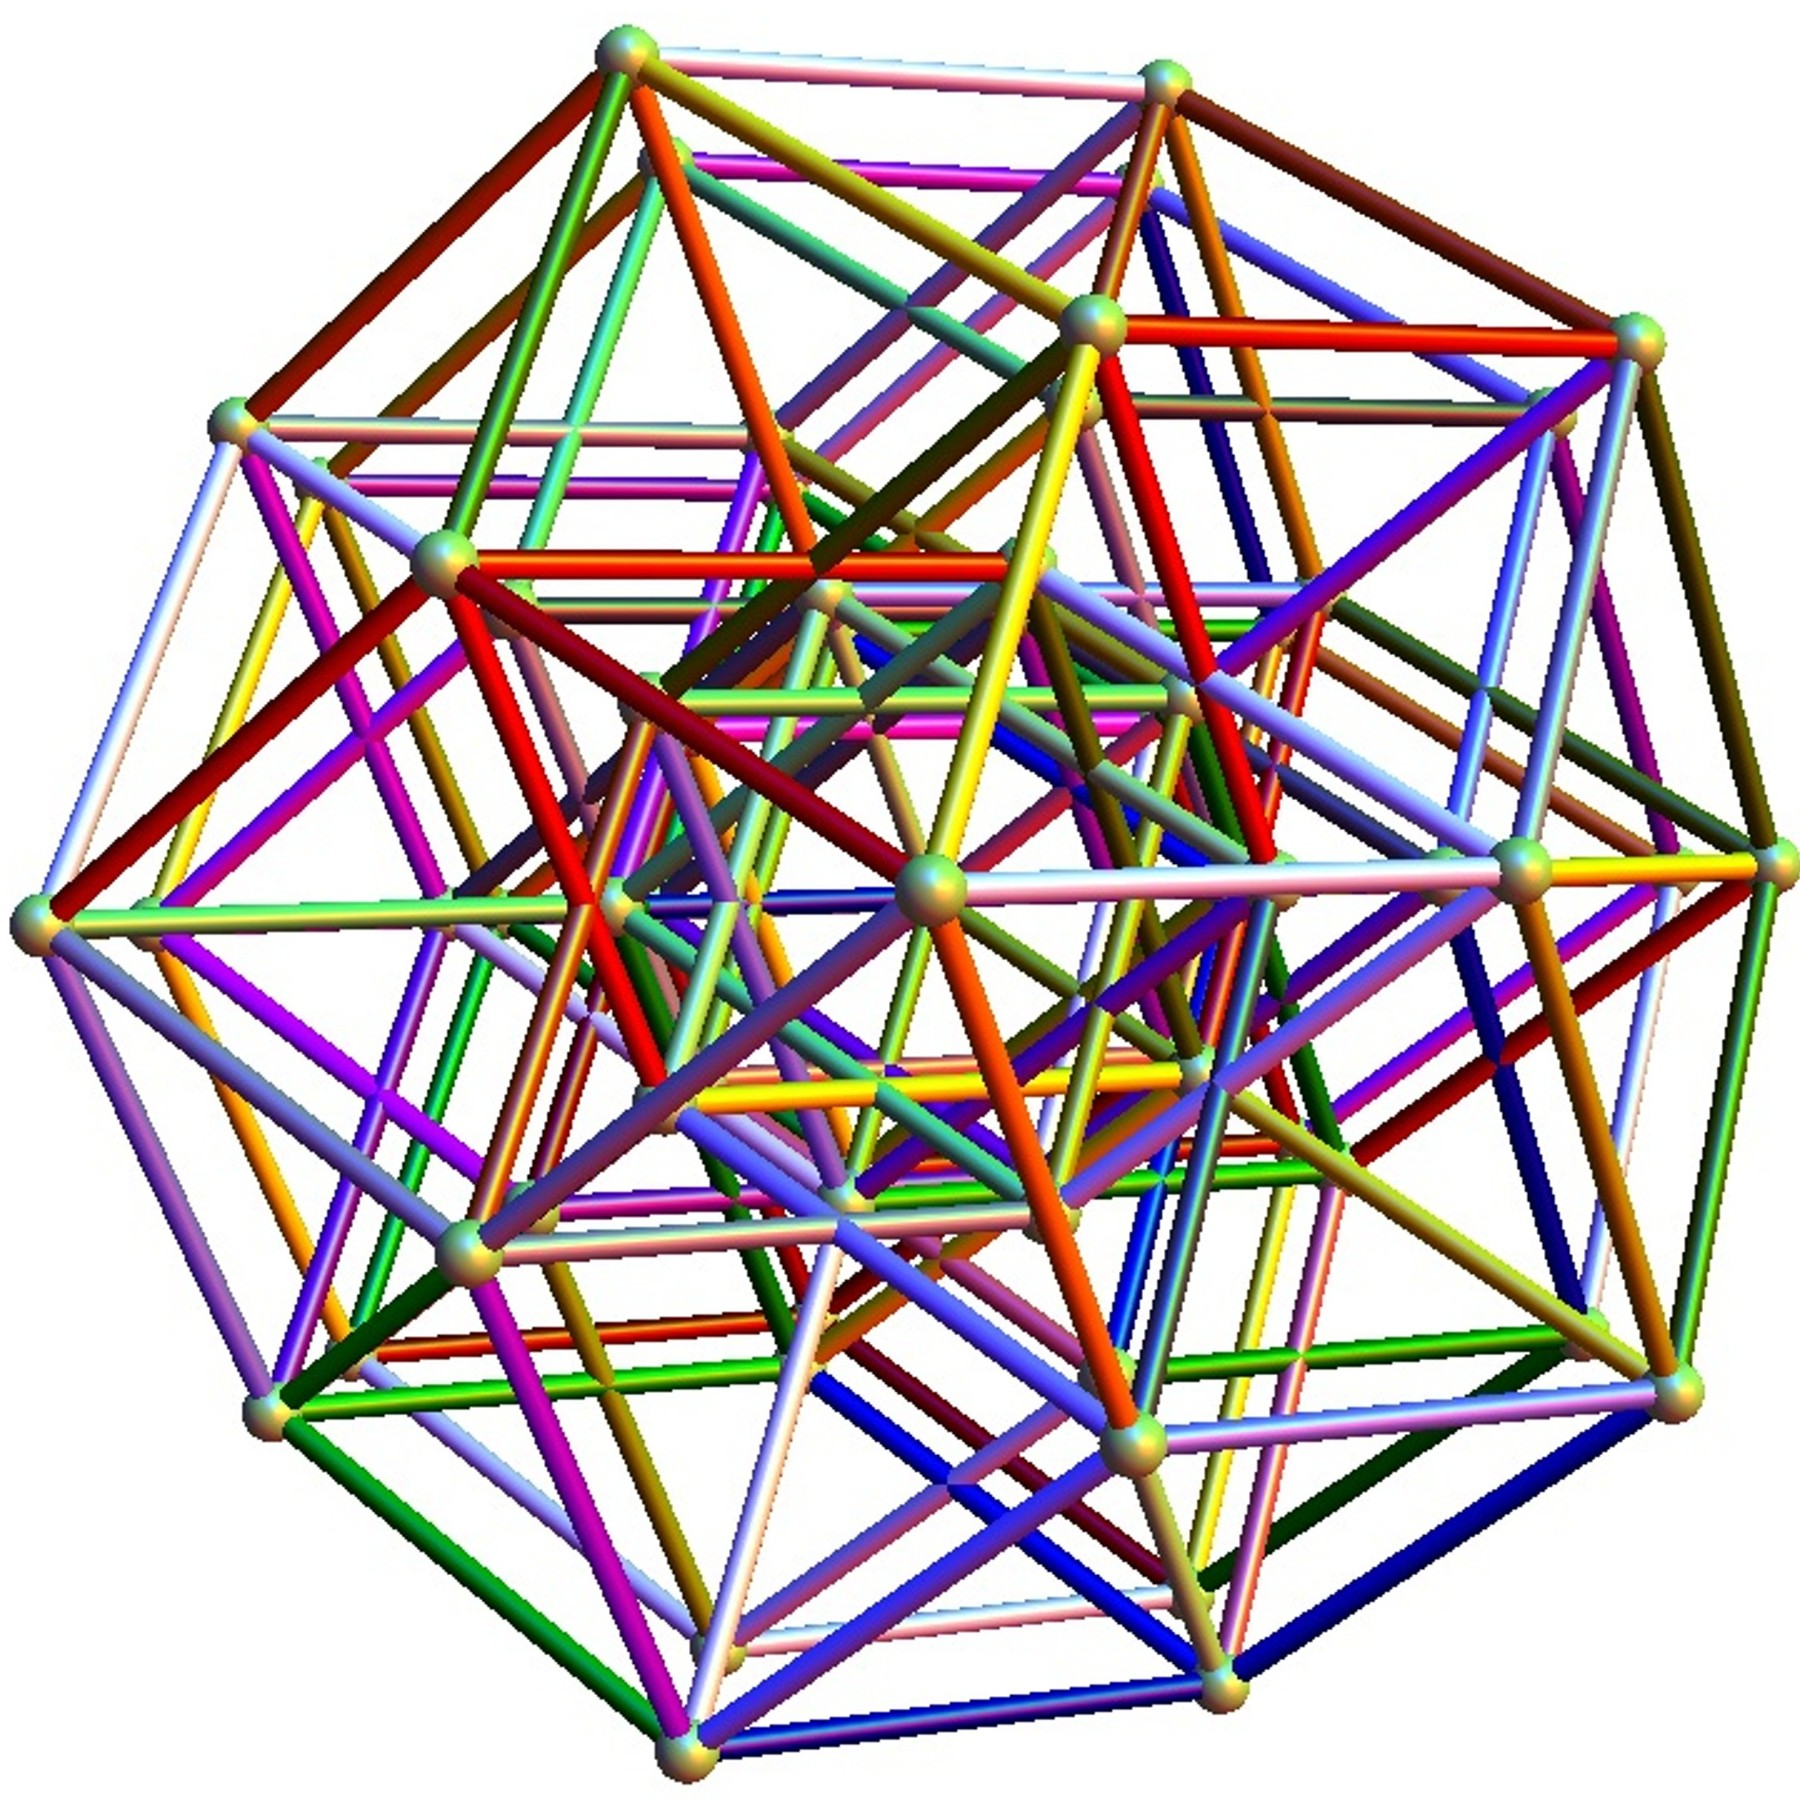 6Cube-QuasiCrystal-low